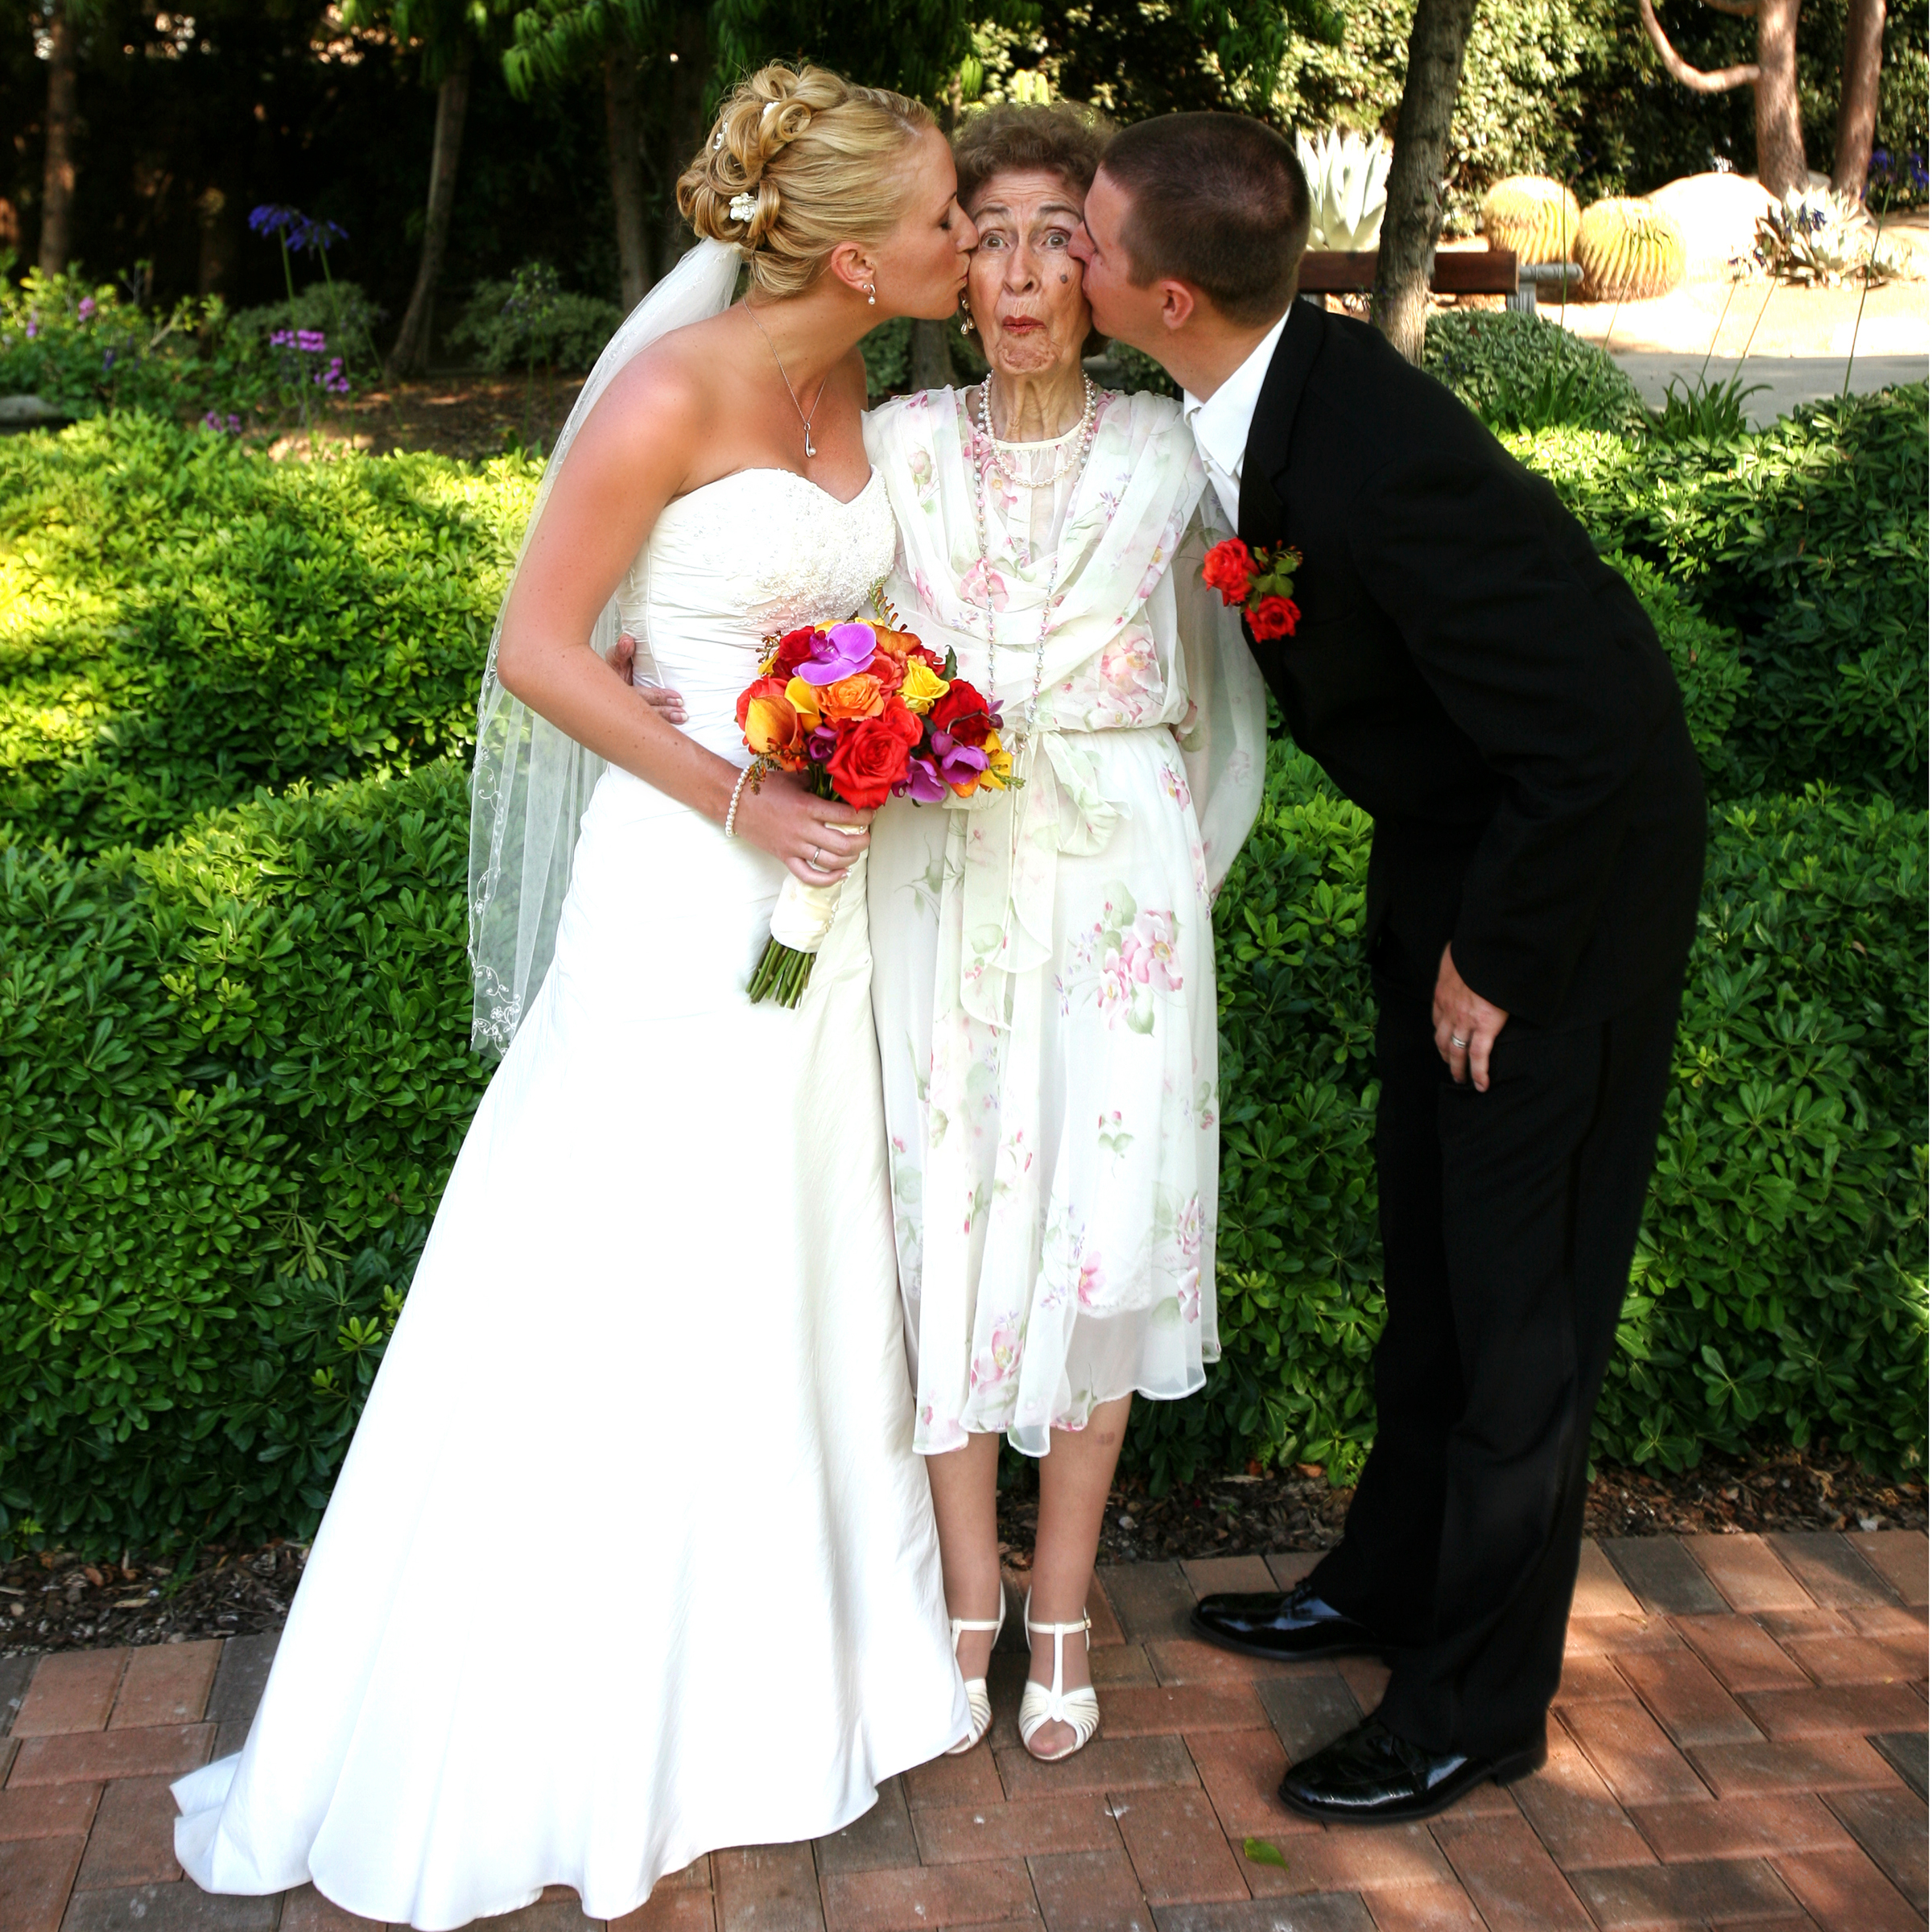 ShadowcatcherGalleryOne_SanDiegoWeddingPhotogrpaher_075.jpg